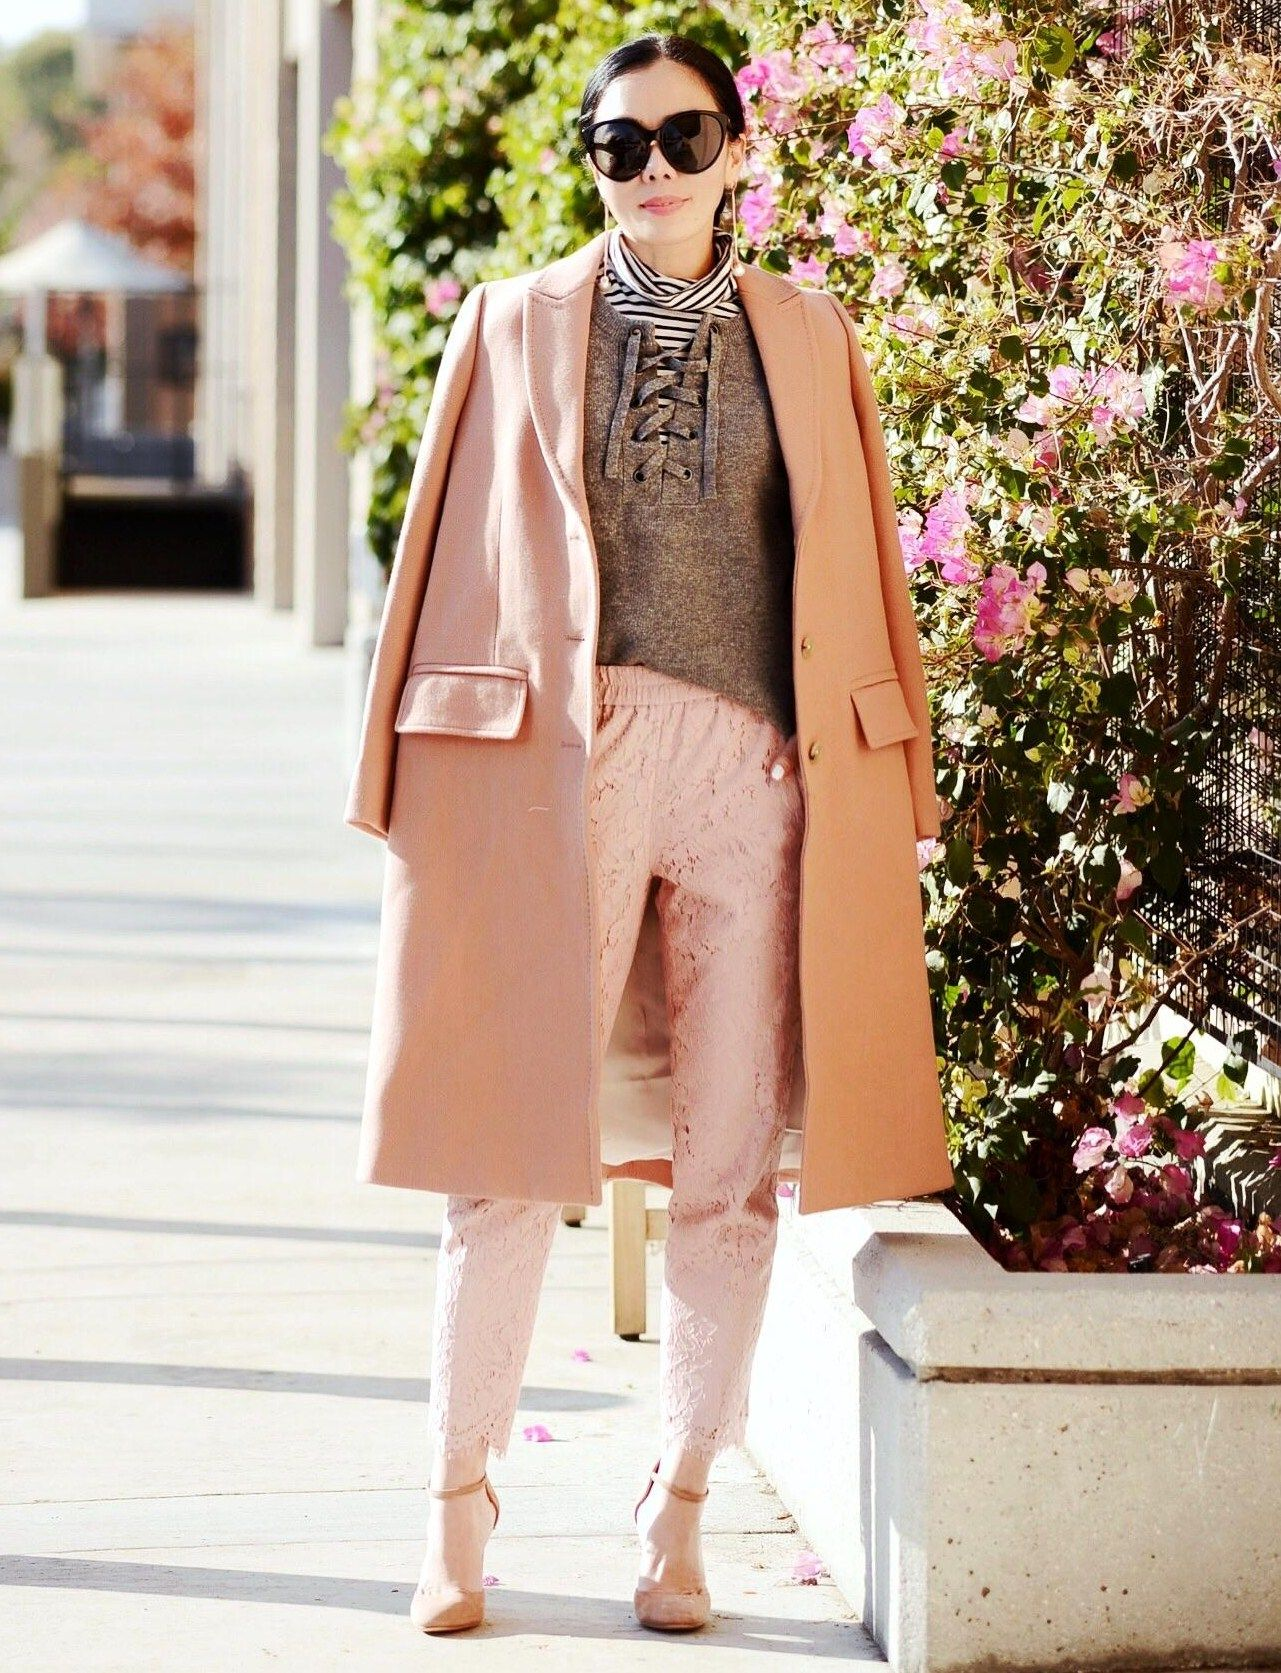 12.16 weekend blush (Madewell pink coat + Madewell lace-up sweater + J Crew striped turtleneck + J Crew lace pants + Gianvito Rossi mary jane blush pumps + Linda Farrow sunnies + Ryan Storer rose gold earrings)